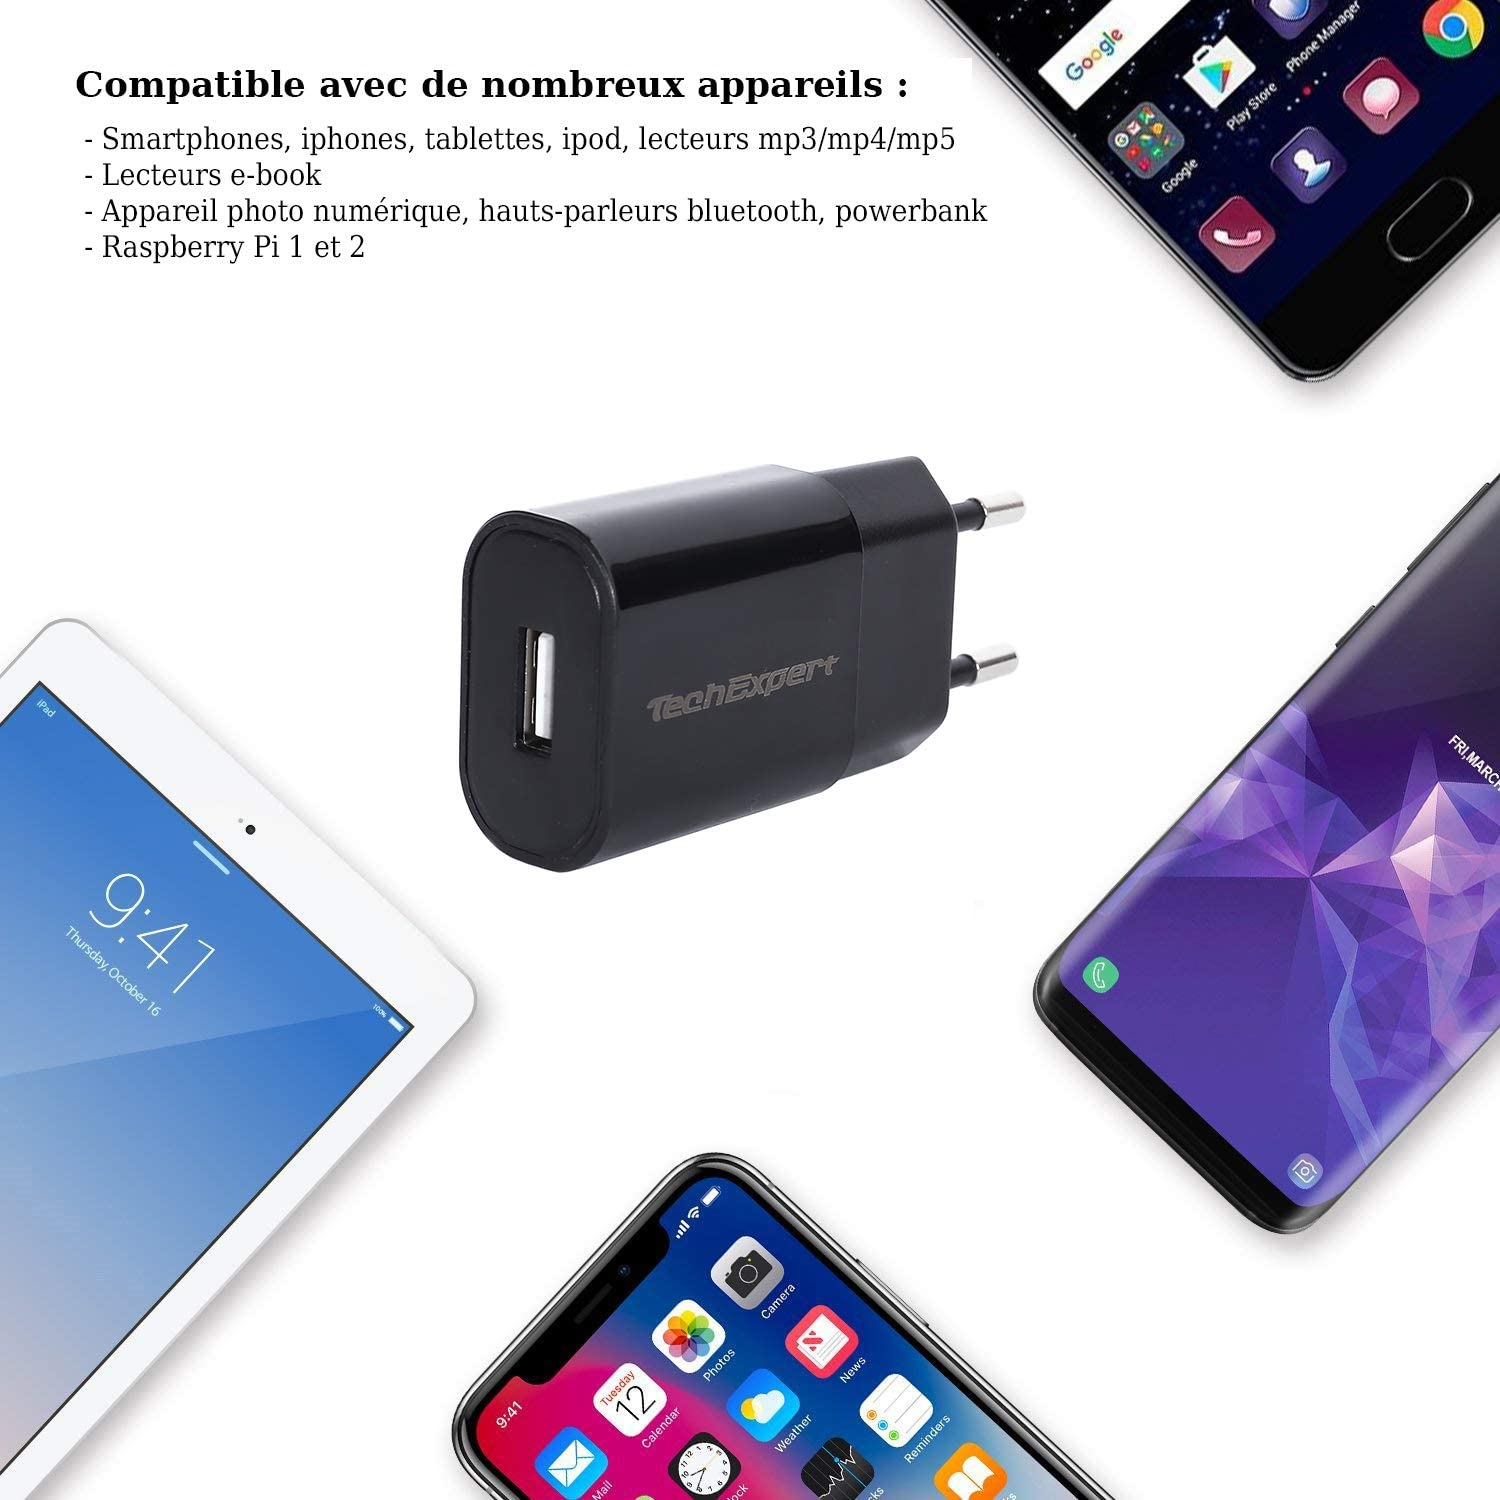 Chargeur Secteur vers USB Noir 5V 2A pour iPhone 7 7Plus, iphone 6 6S 6Plus, Galaxy Note 6, Galaxy S6 S7, Honor 7, Honor 8, Nokia, LG, Huawei,